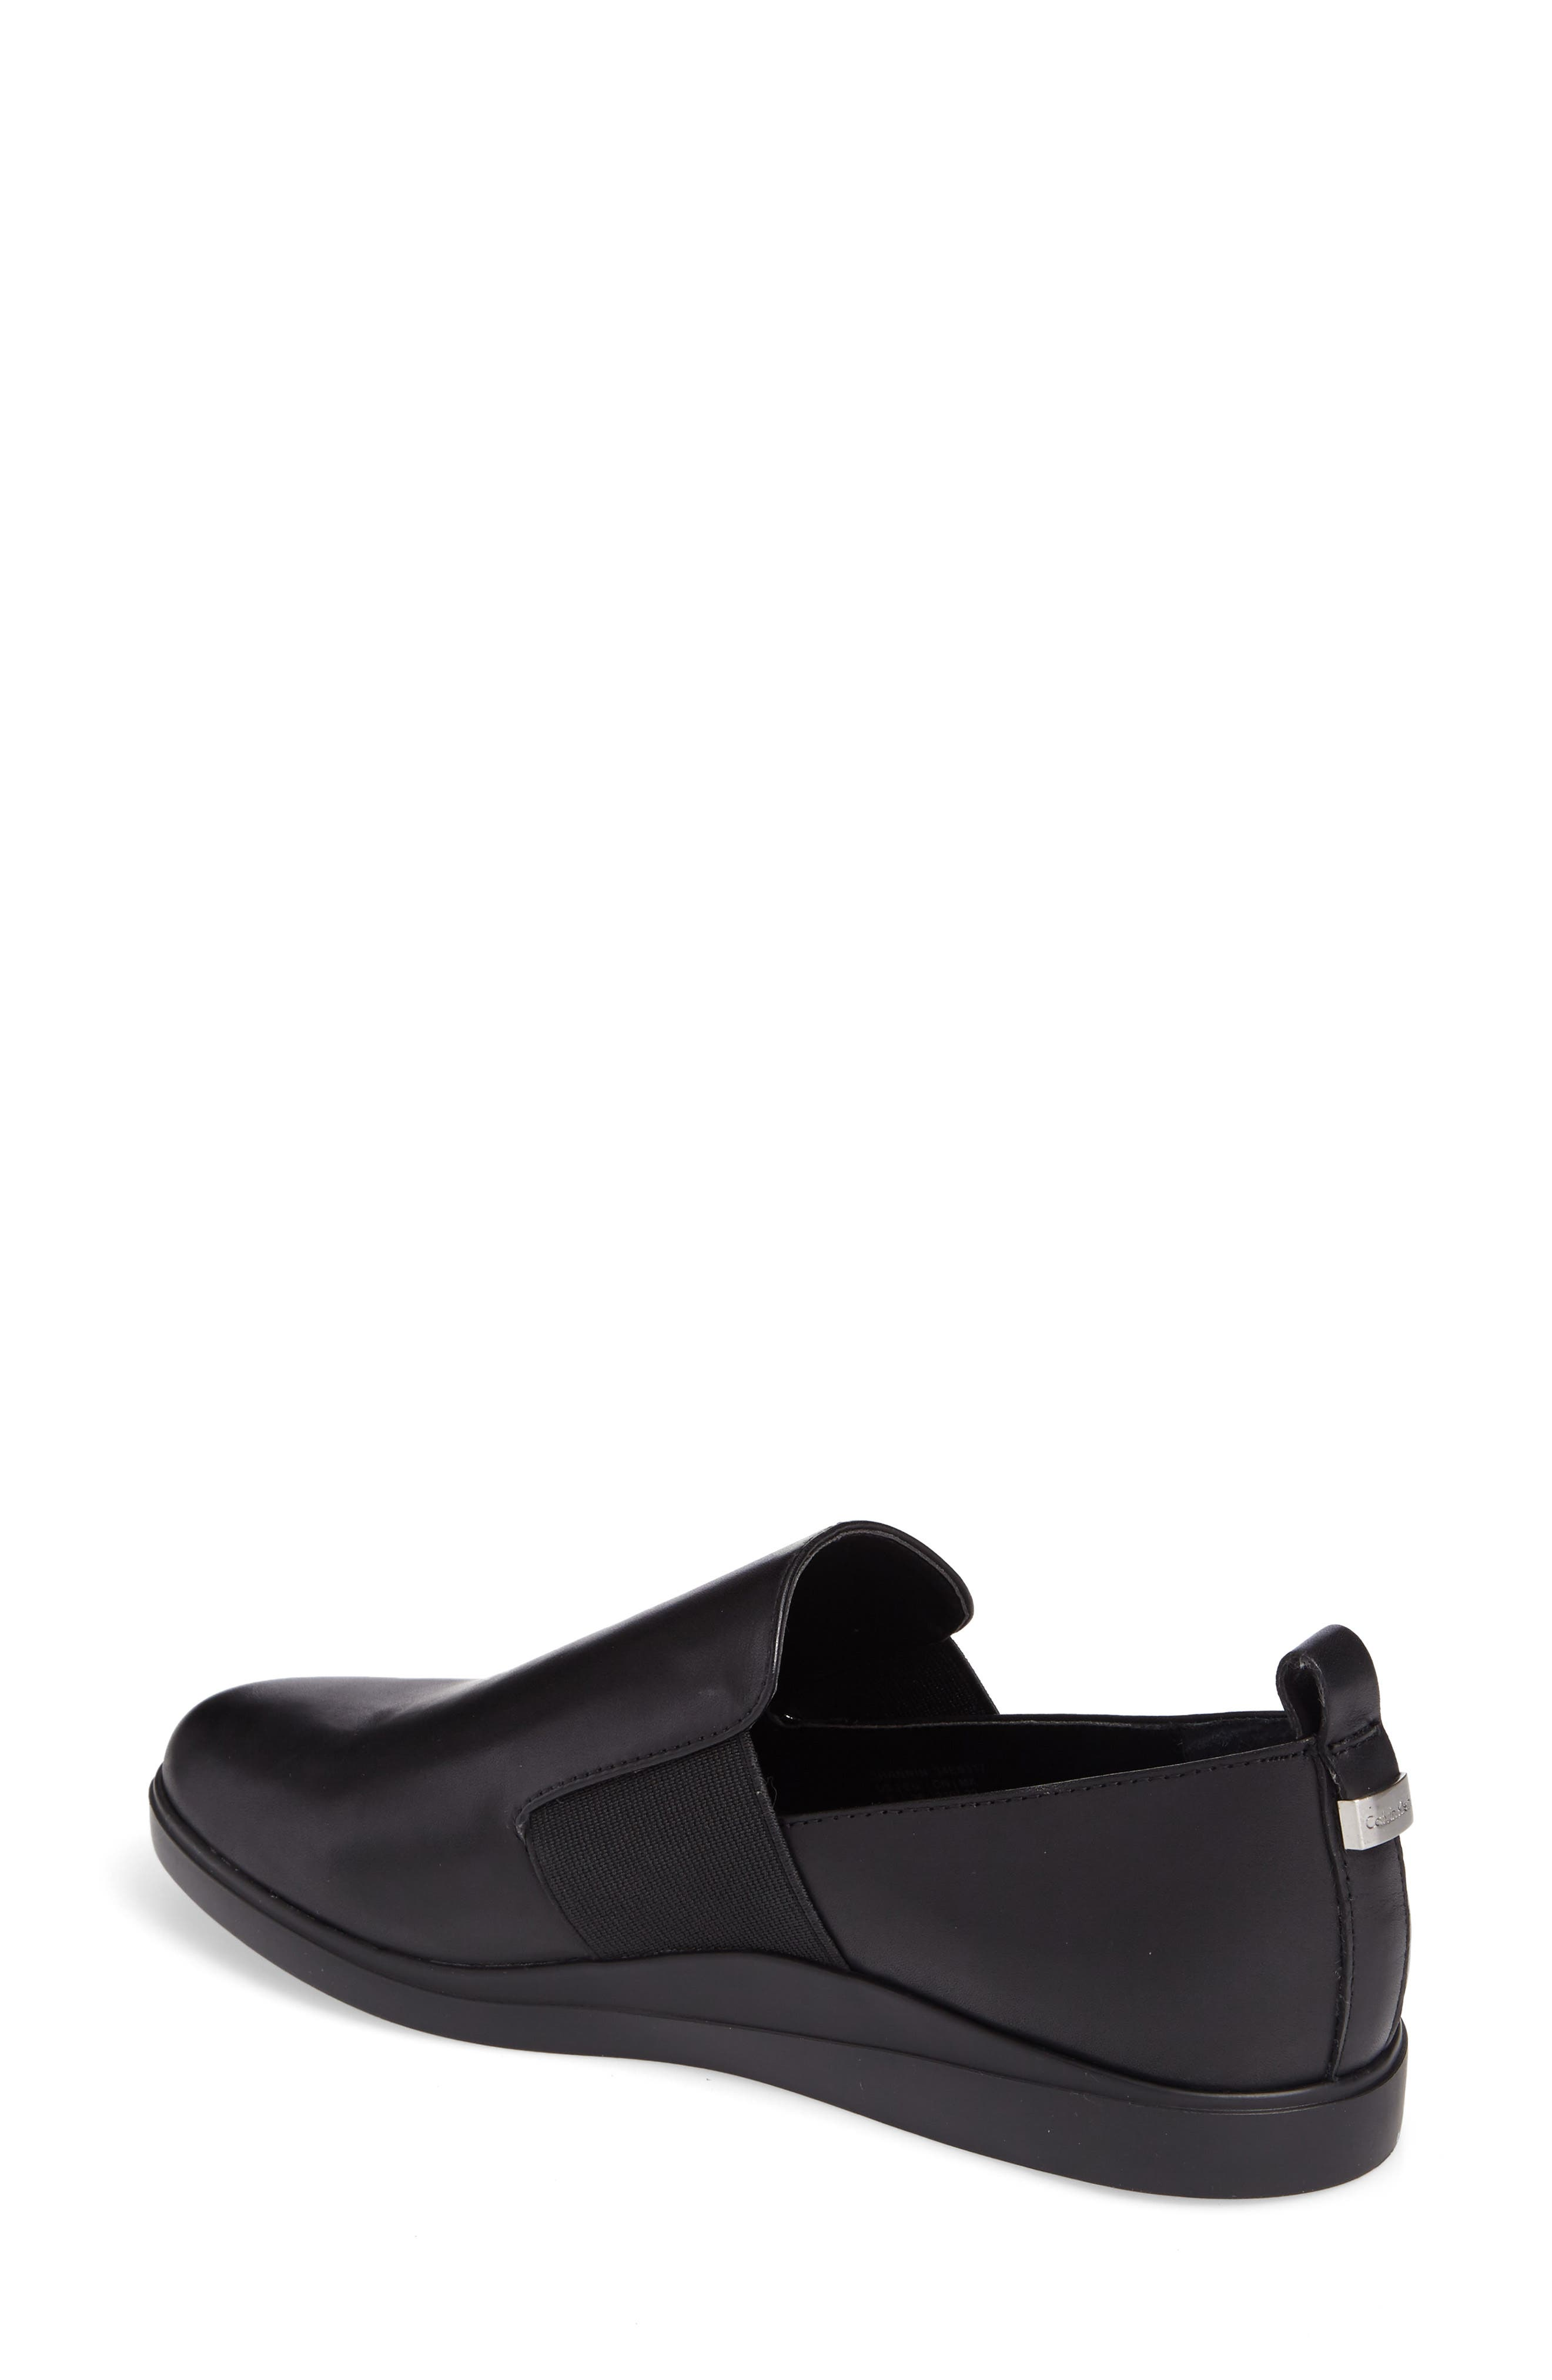 Shannin Loafer,                             Alternate thumbnail 2, color,                             Black Leather